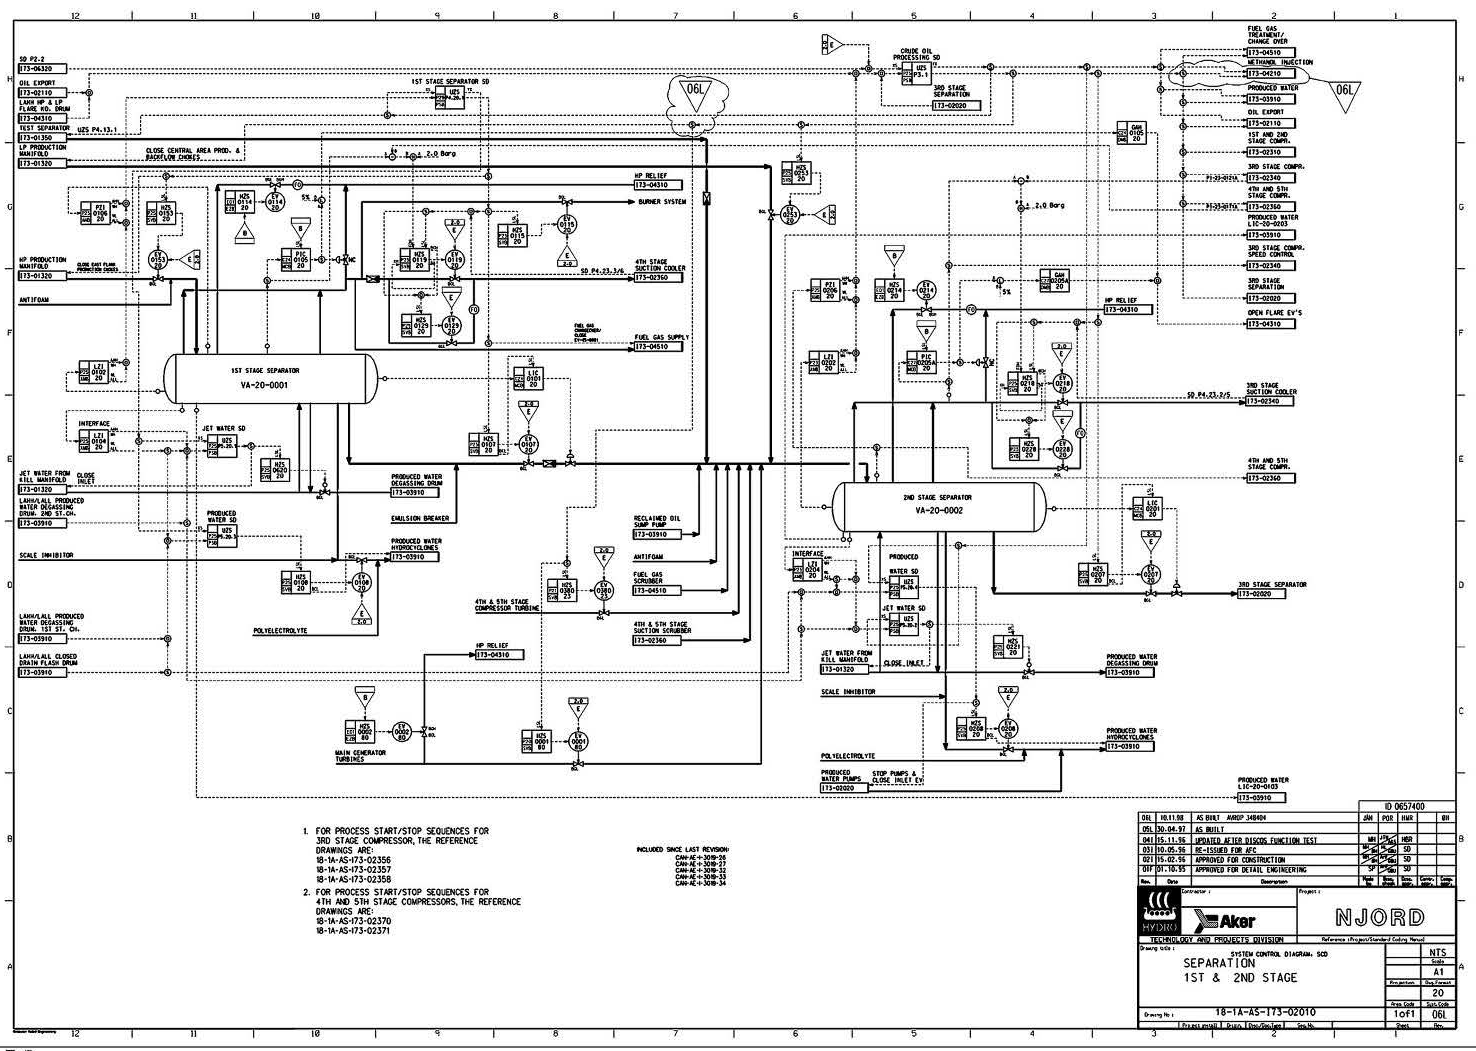 marine s power wiring diagram pdf with 2014 01 01 Archive on Generac 5000 Generator Owners Manual moreover 1995 Suburban Factory   Wiring further Generac 4000exl Generator Owners Manual moreover Carrier 73 3w Heat Air Conditioner Manual furthermore 1984 Chevy Tilt Steering Column Diagram.